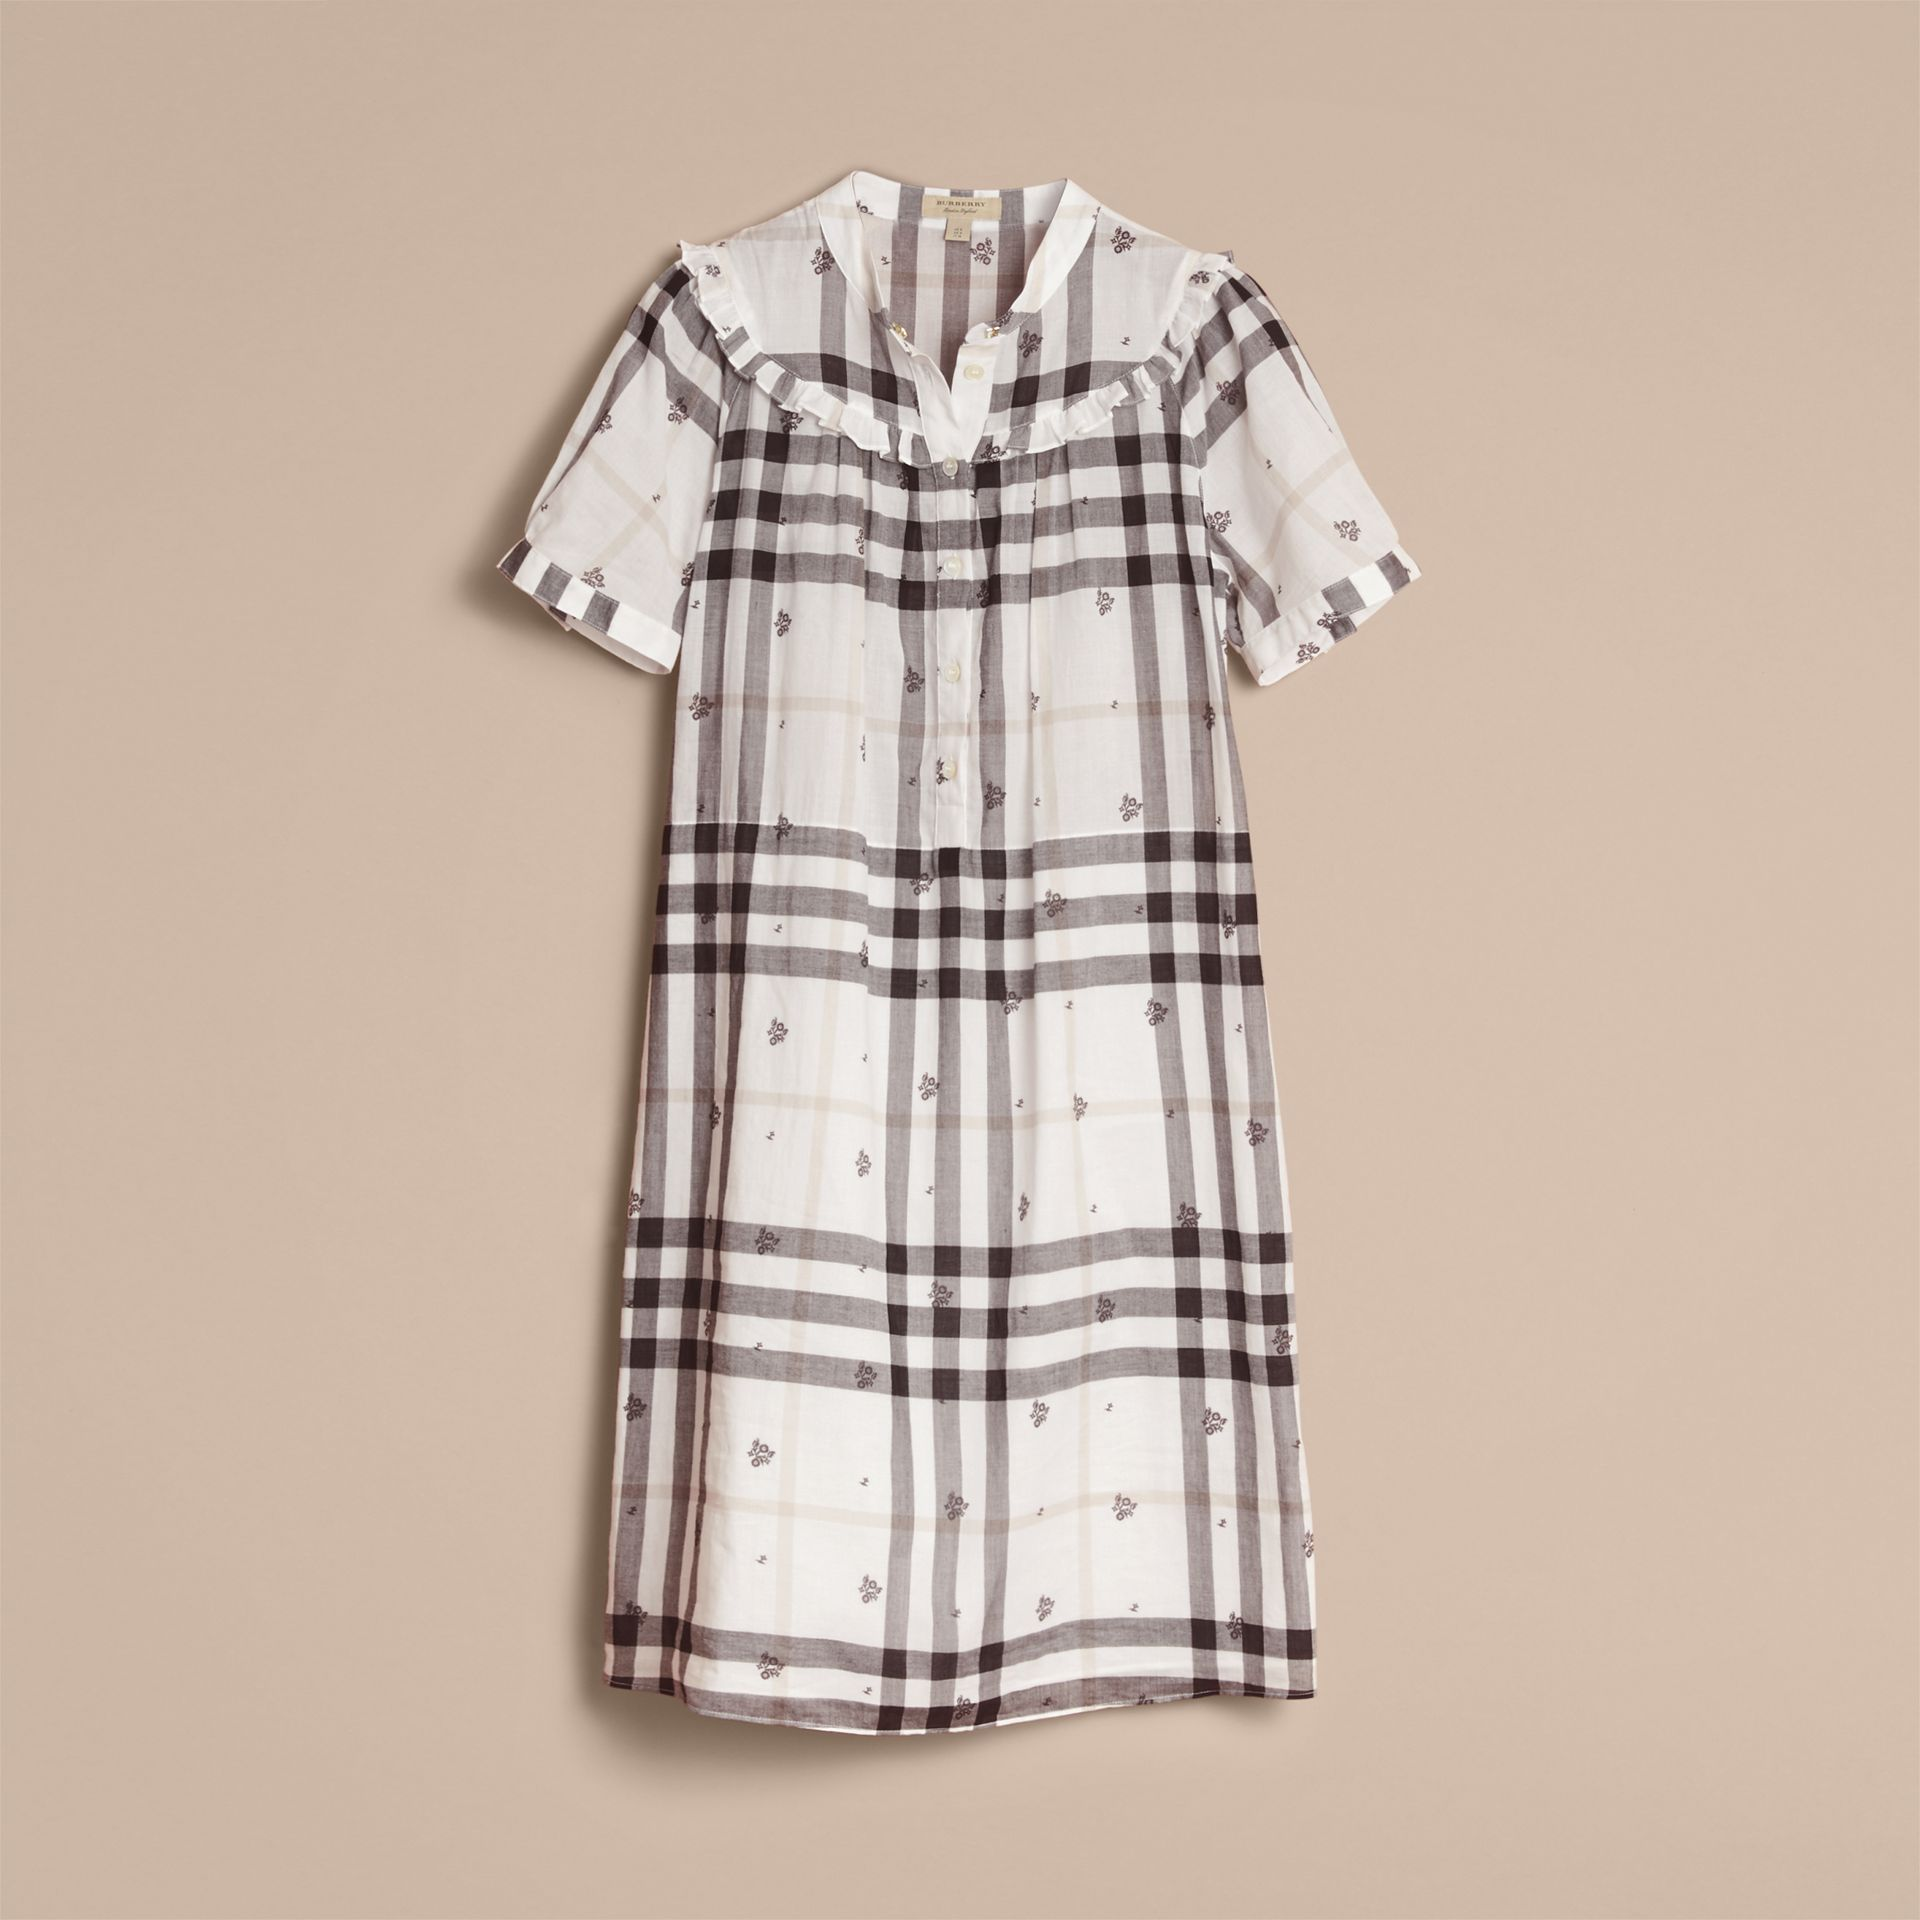 Ruffle Detail Floral Print Check Cotton Dress in White - Women | Burberry Singapore - gallery image 4